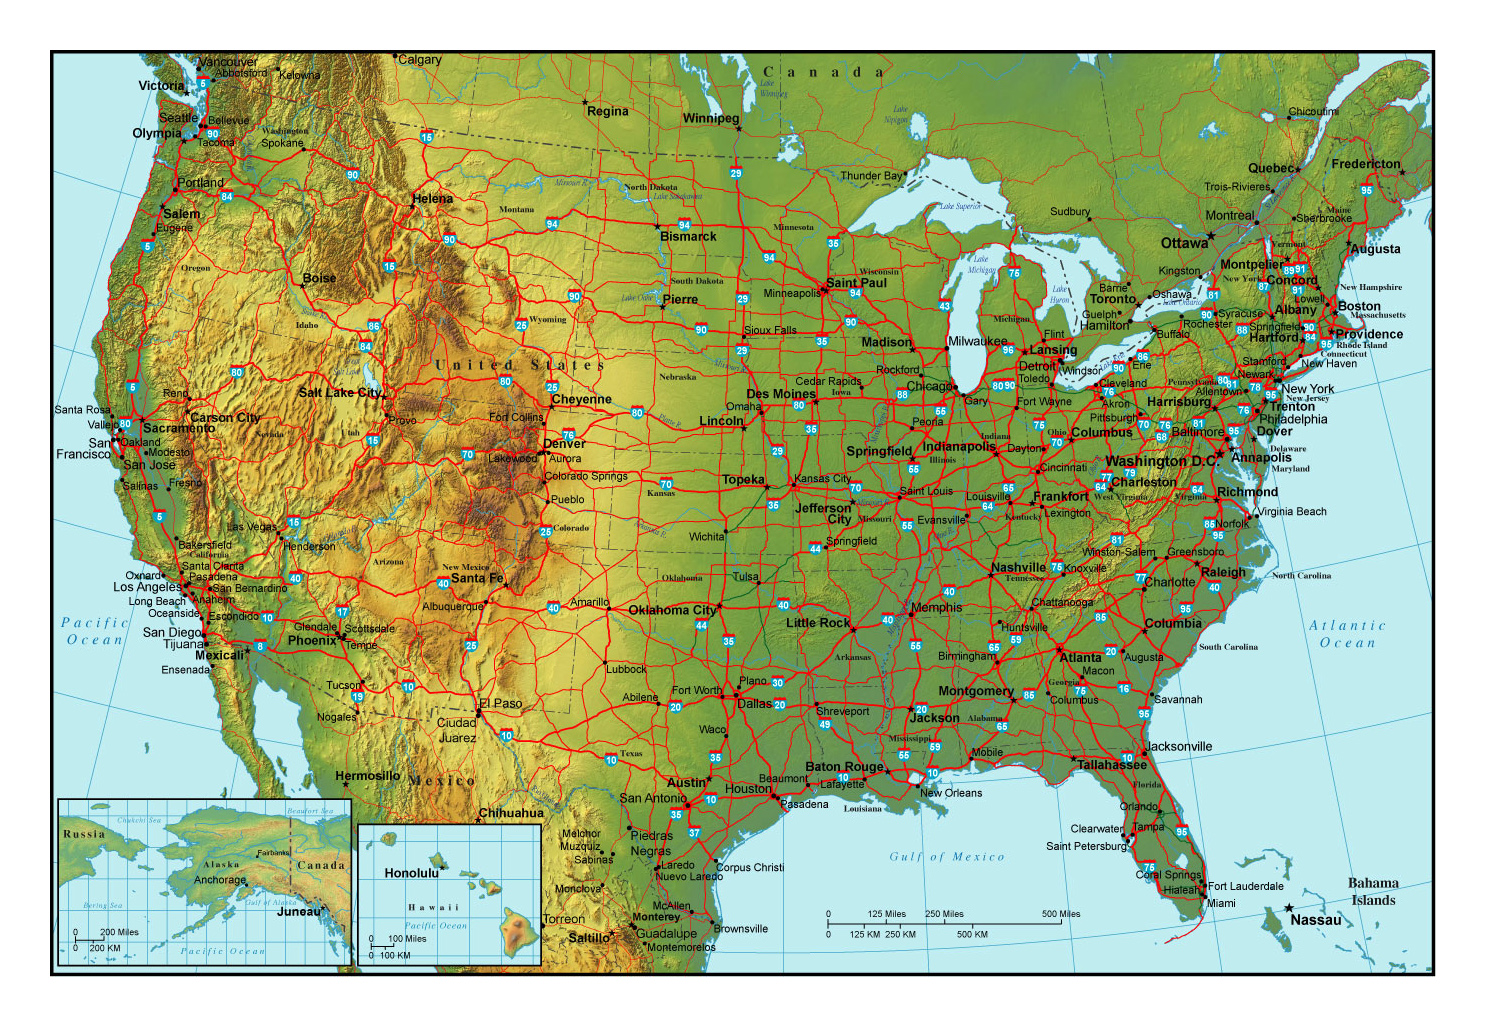 Topographical Map Of The USA With Highways And Major Cities USA - Usa map with major cities and highways